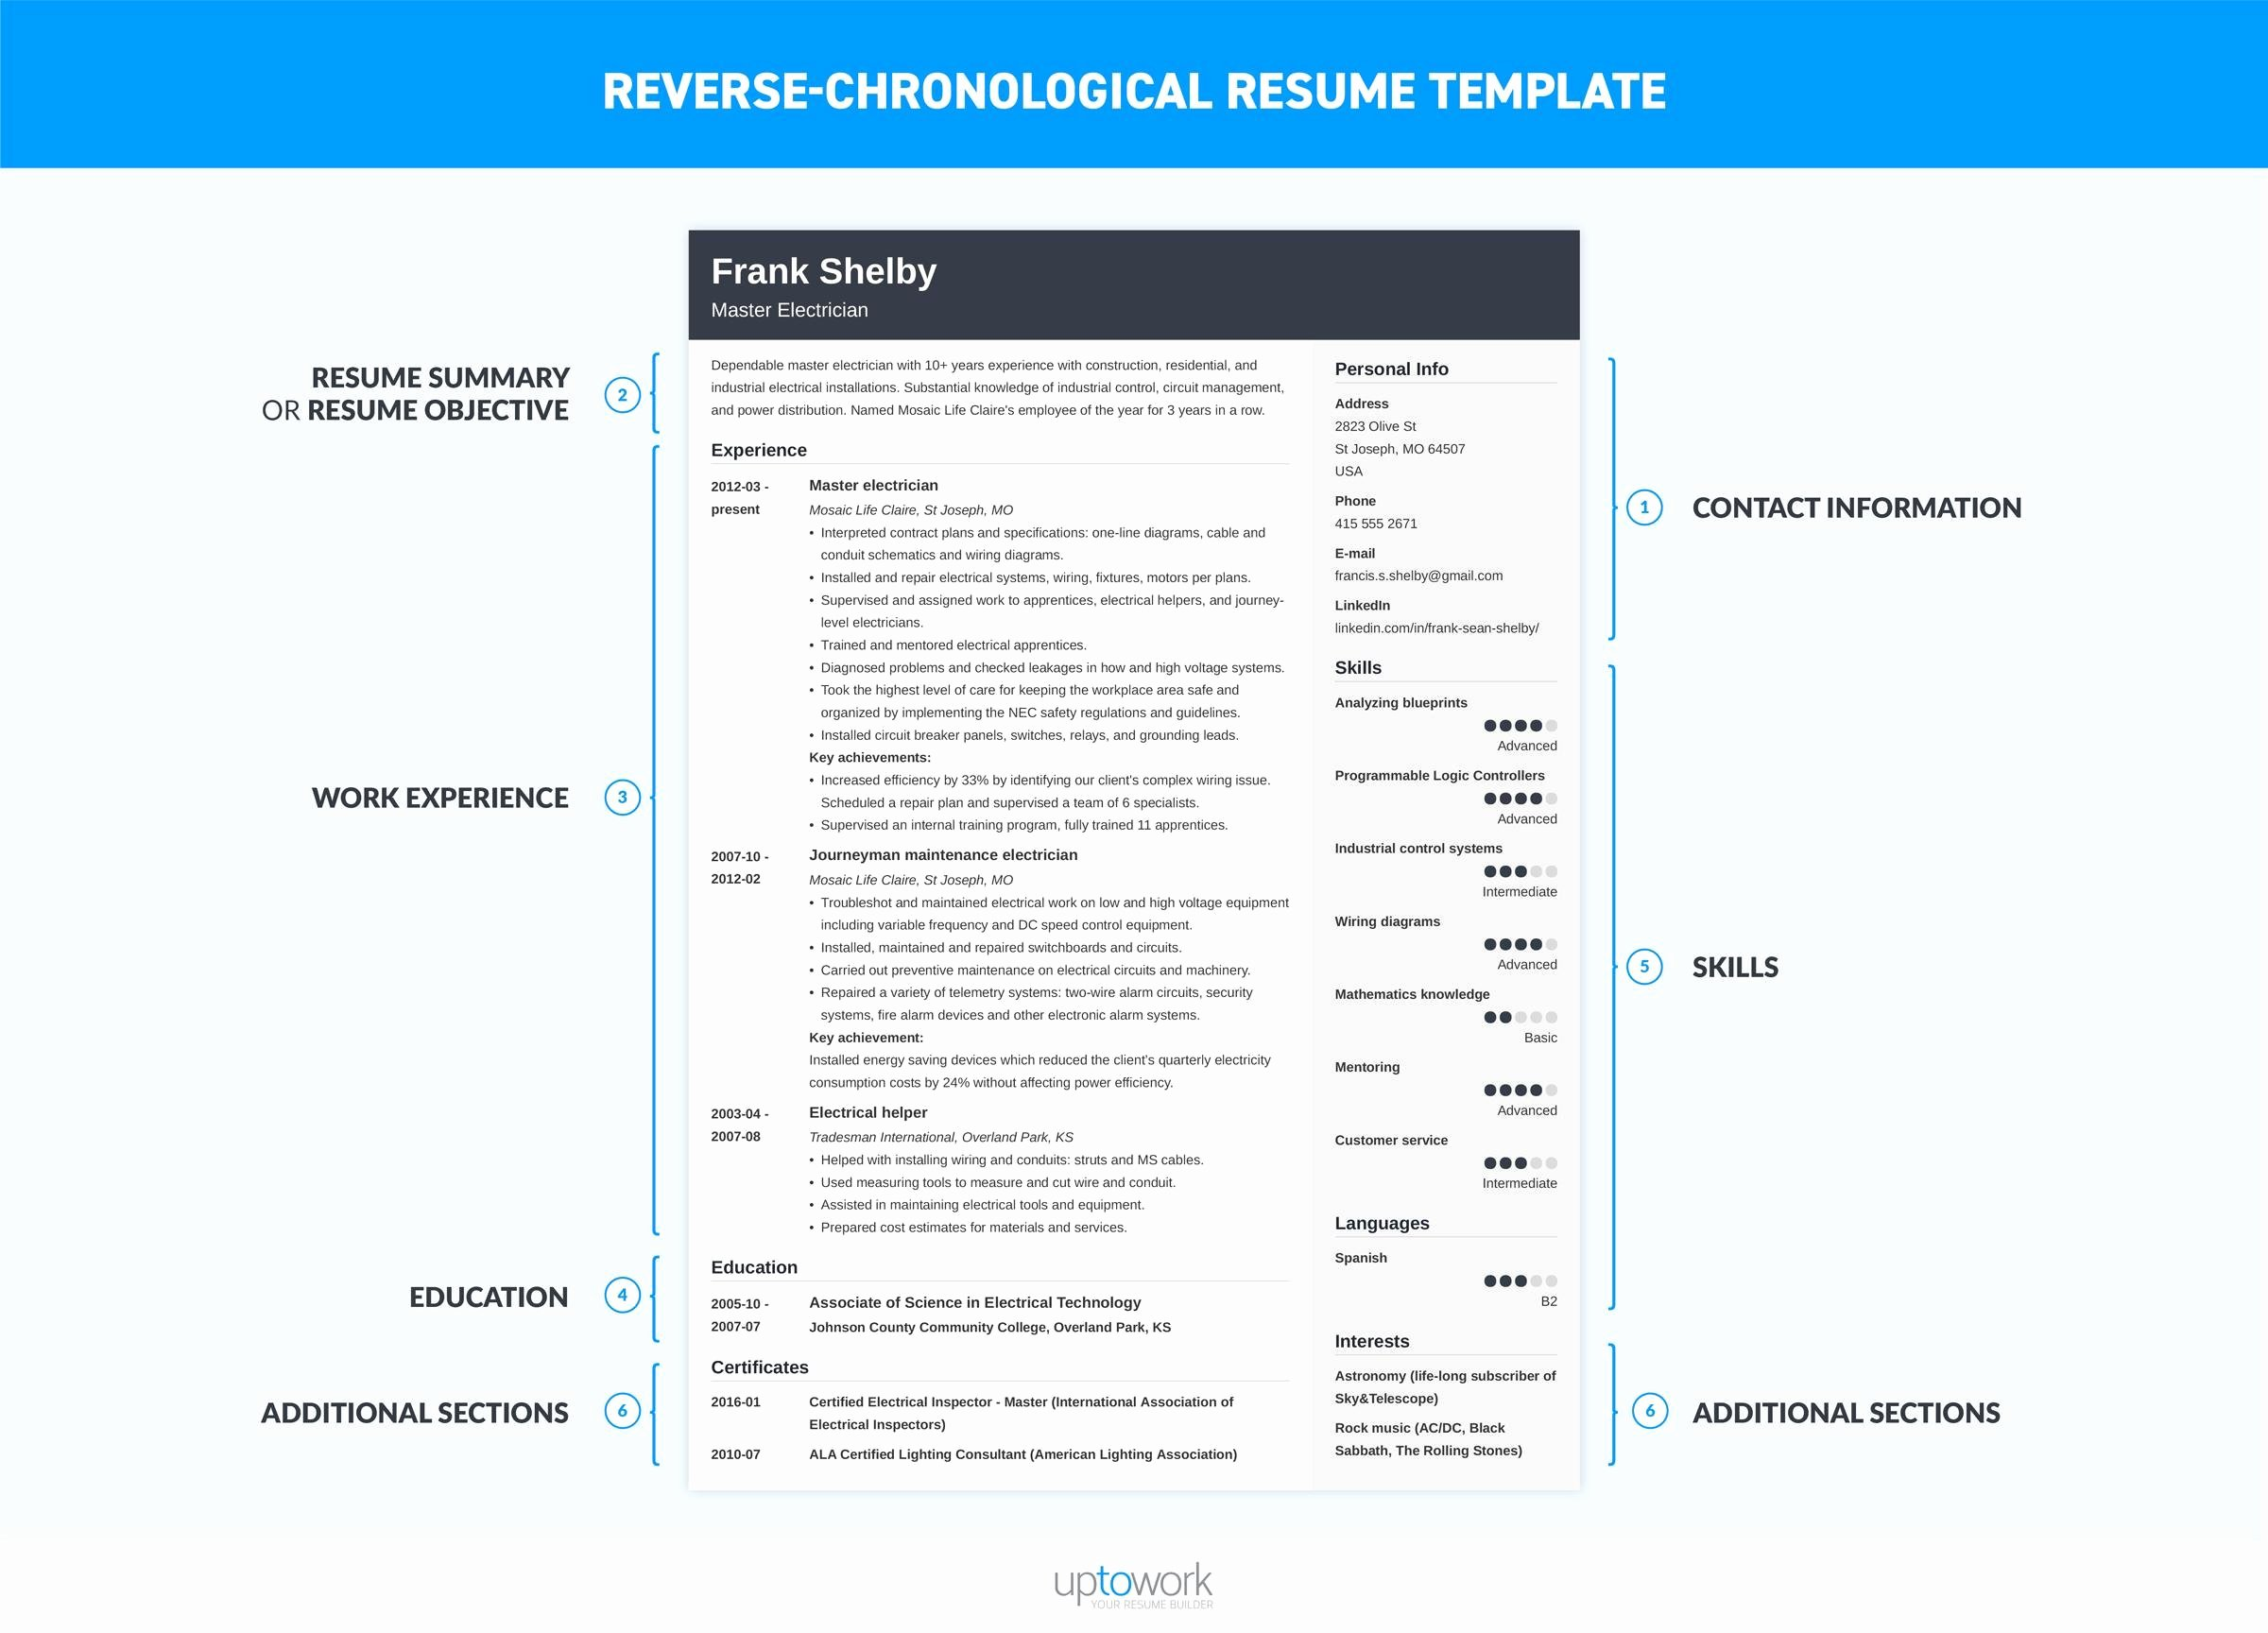 Reverse Chronological Resume Template Best Of Resume formats Pick the Best E In 3 Steps Examples